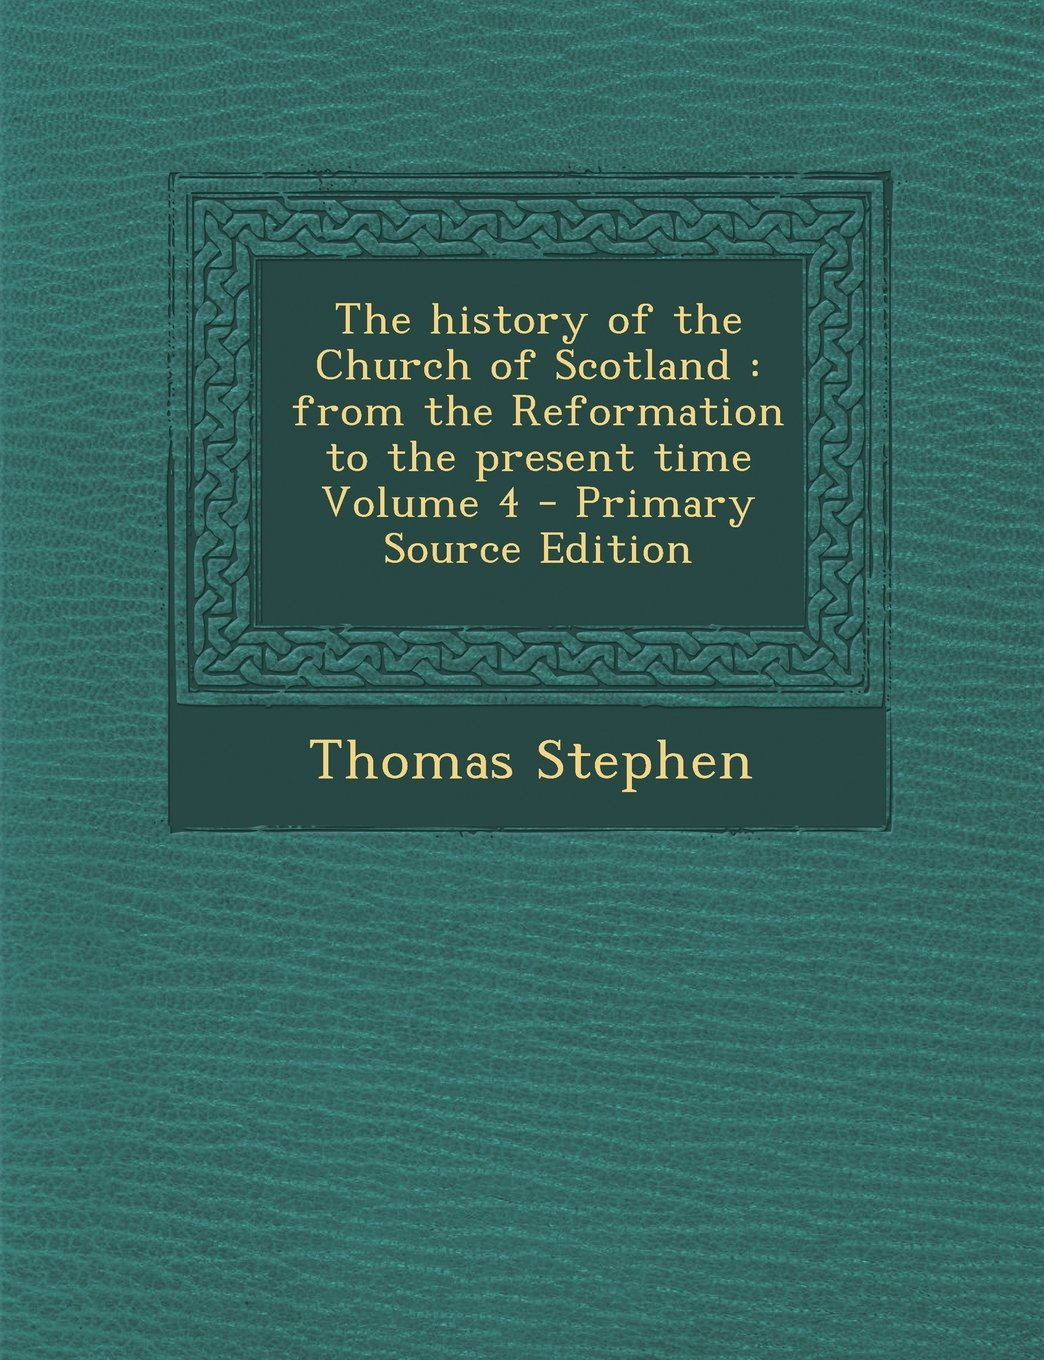 Download History of the Church of Scotland: From the Reformation to the Present Time Volume 4 pdf